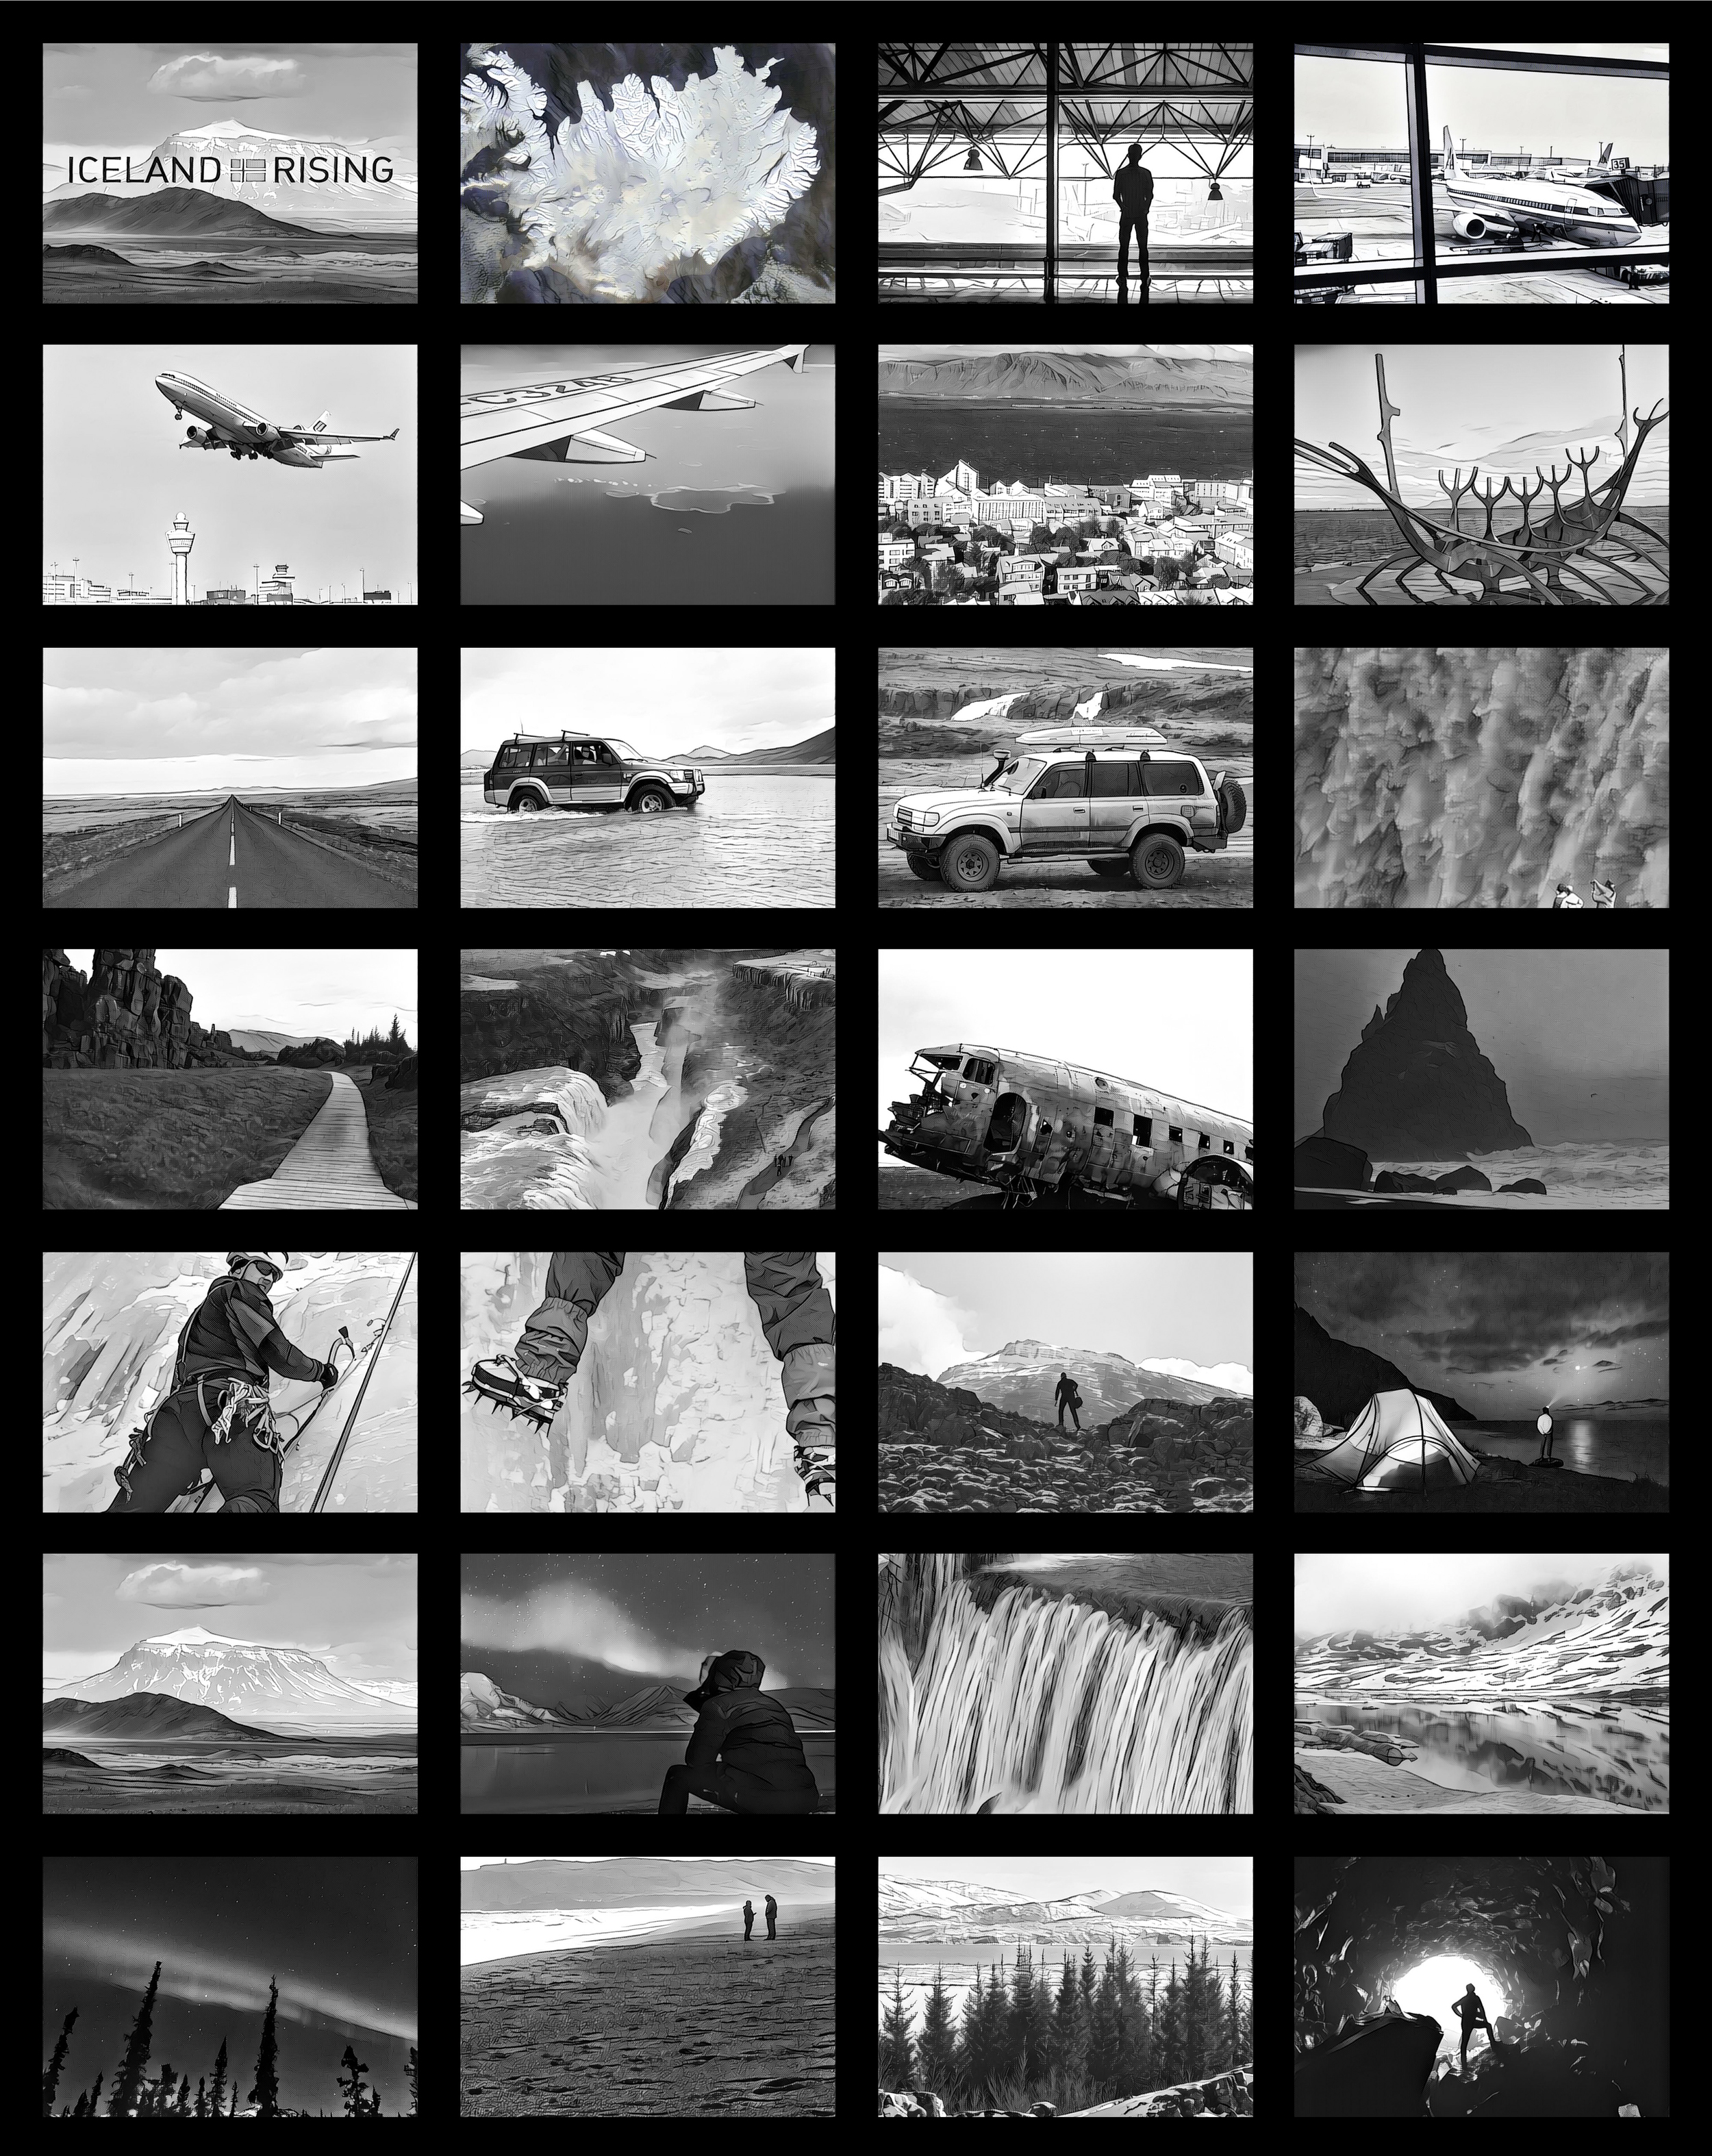 Full overview storyboard of location shots for Iceland Rising